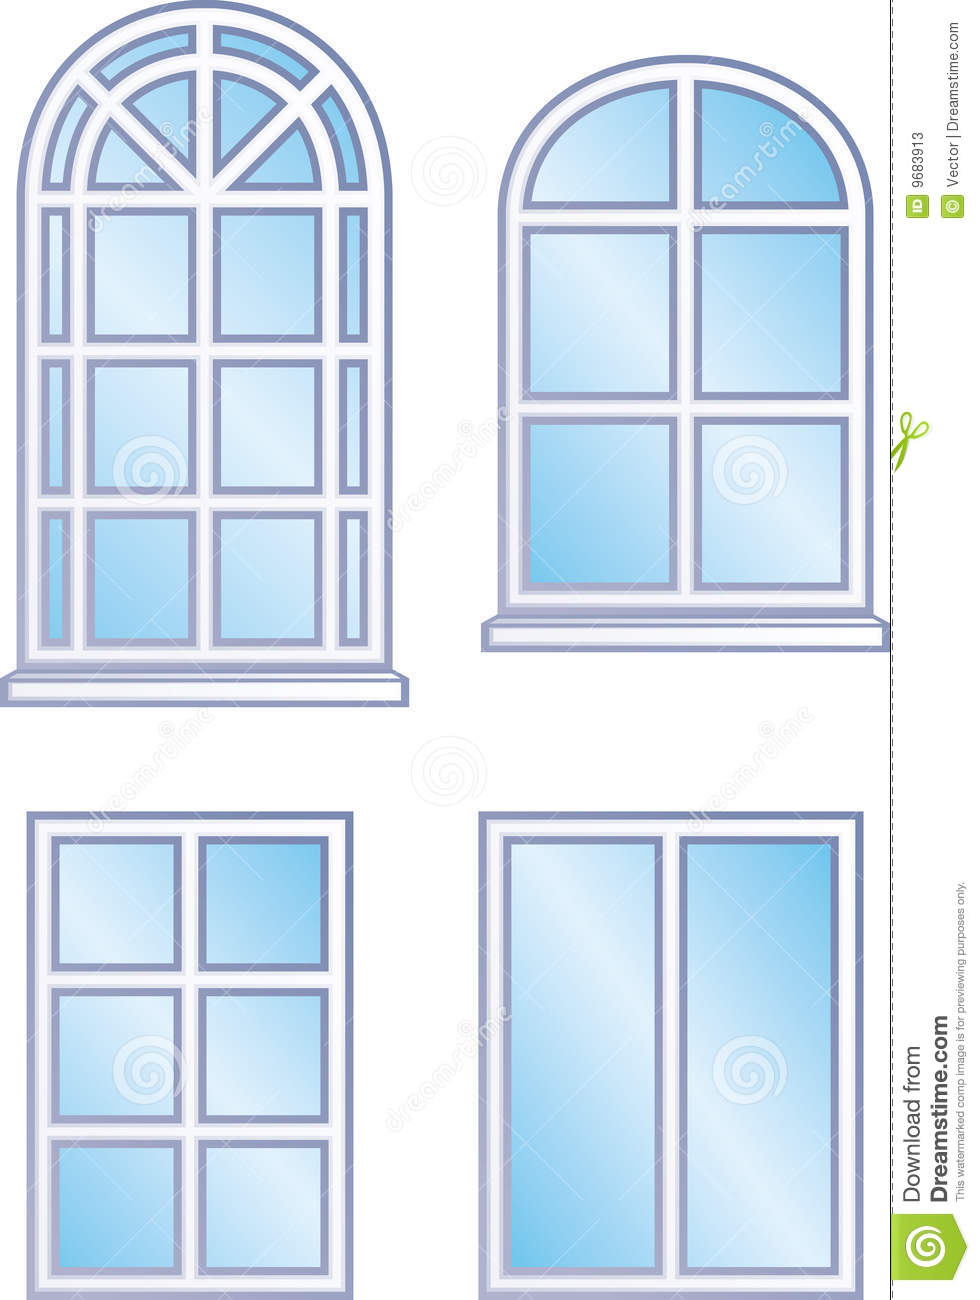 Window frames (Vector) stock vector. Illustration of glass - 9683913